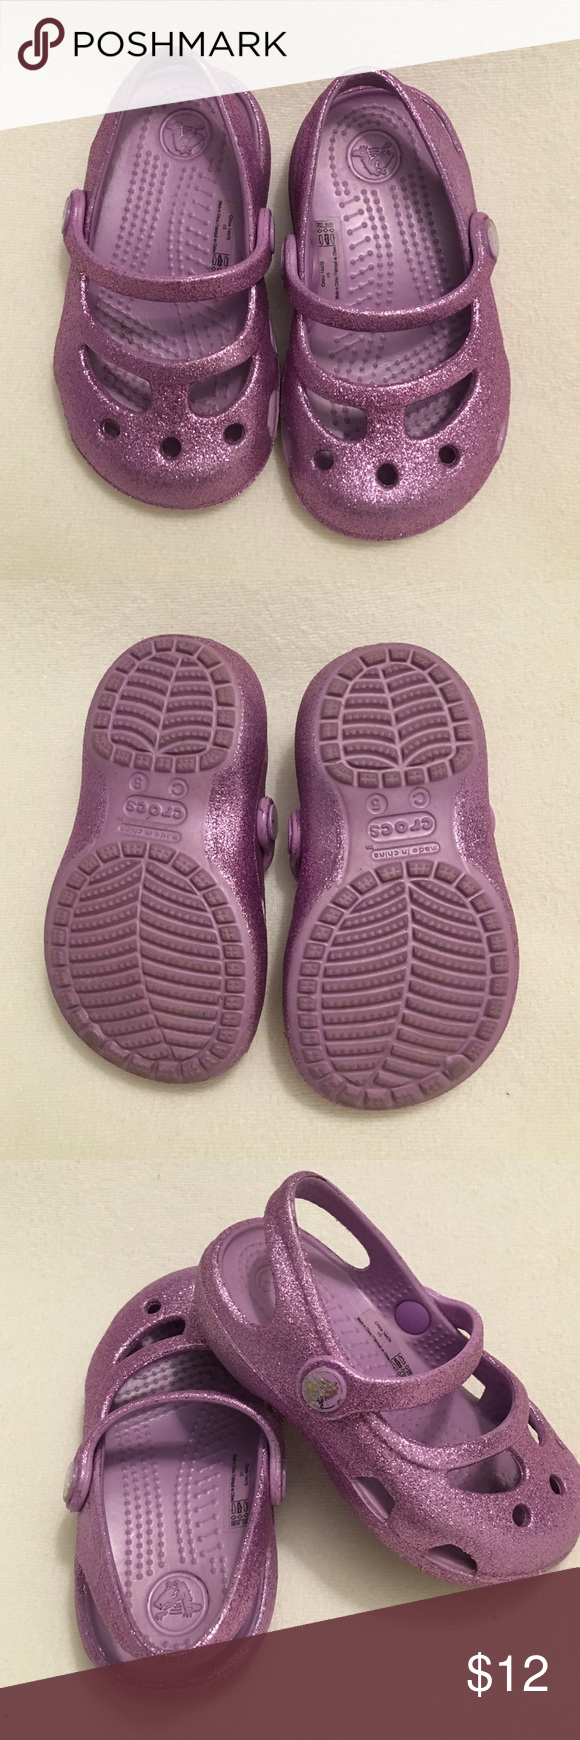 Kids crocs Excellent used condition. Worn 2 times. Just a little scratch on the right side button, check picture. CROCS Shoes Sandals & Flip Flops